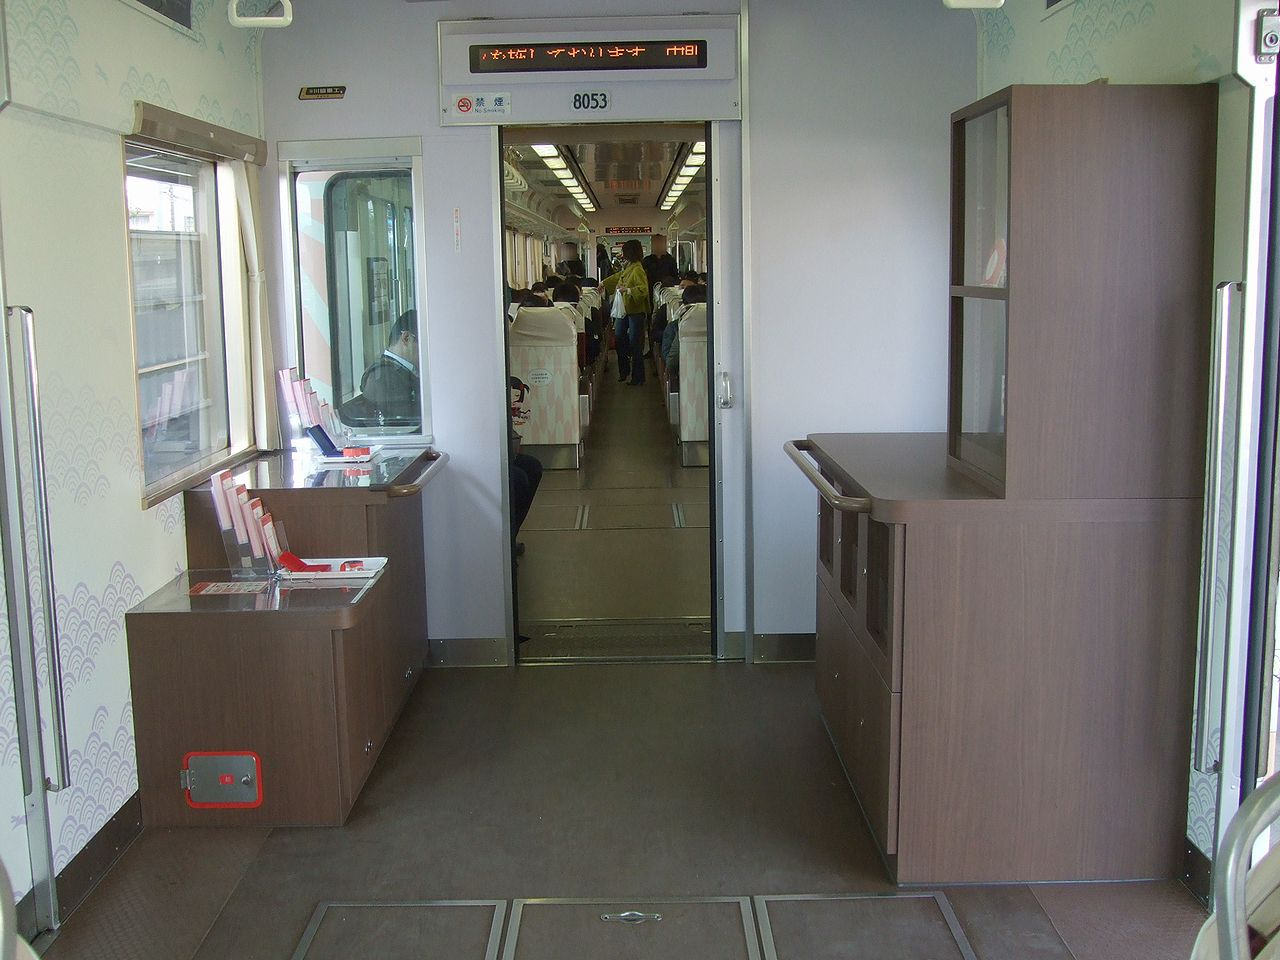 https://upload.wikimedia.org/wikipedia/commons/e/e8/Nishitetsu_8053_inside02.jpg